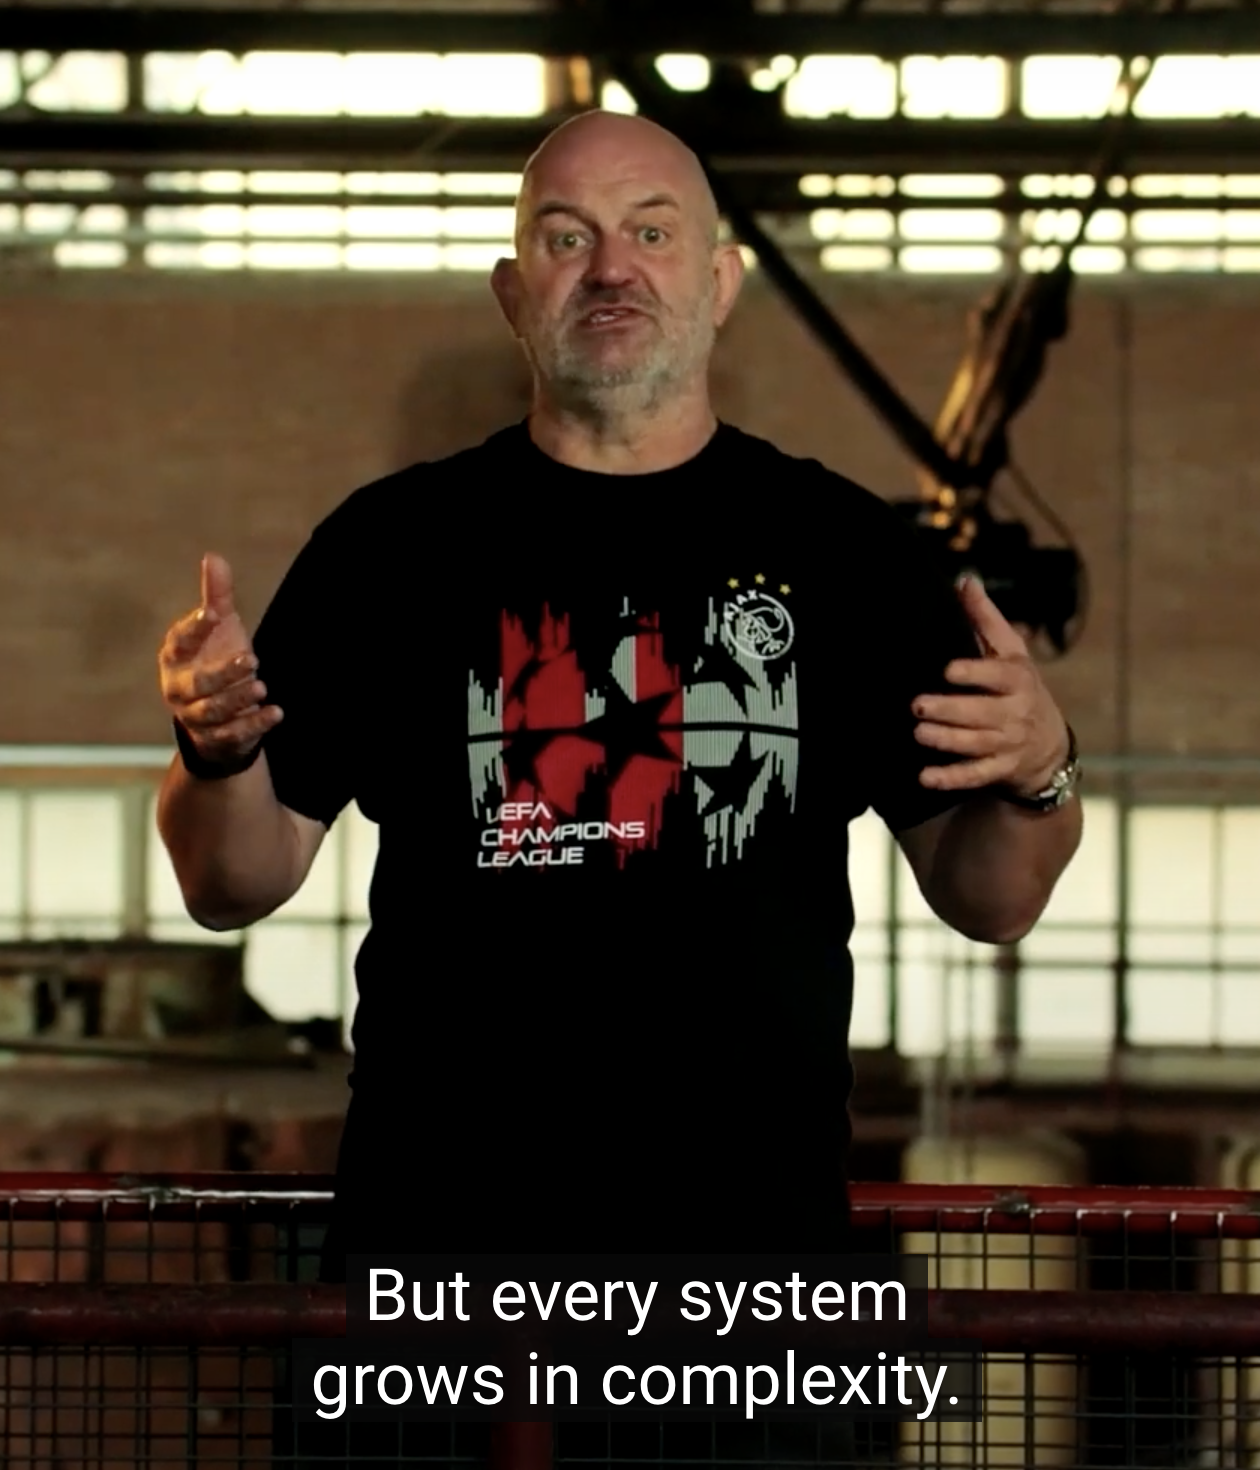 Werner Vogels, systems grow in complexity